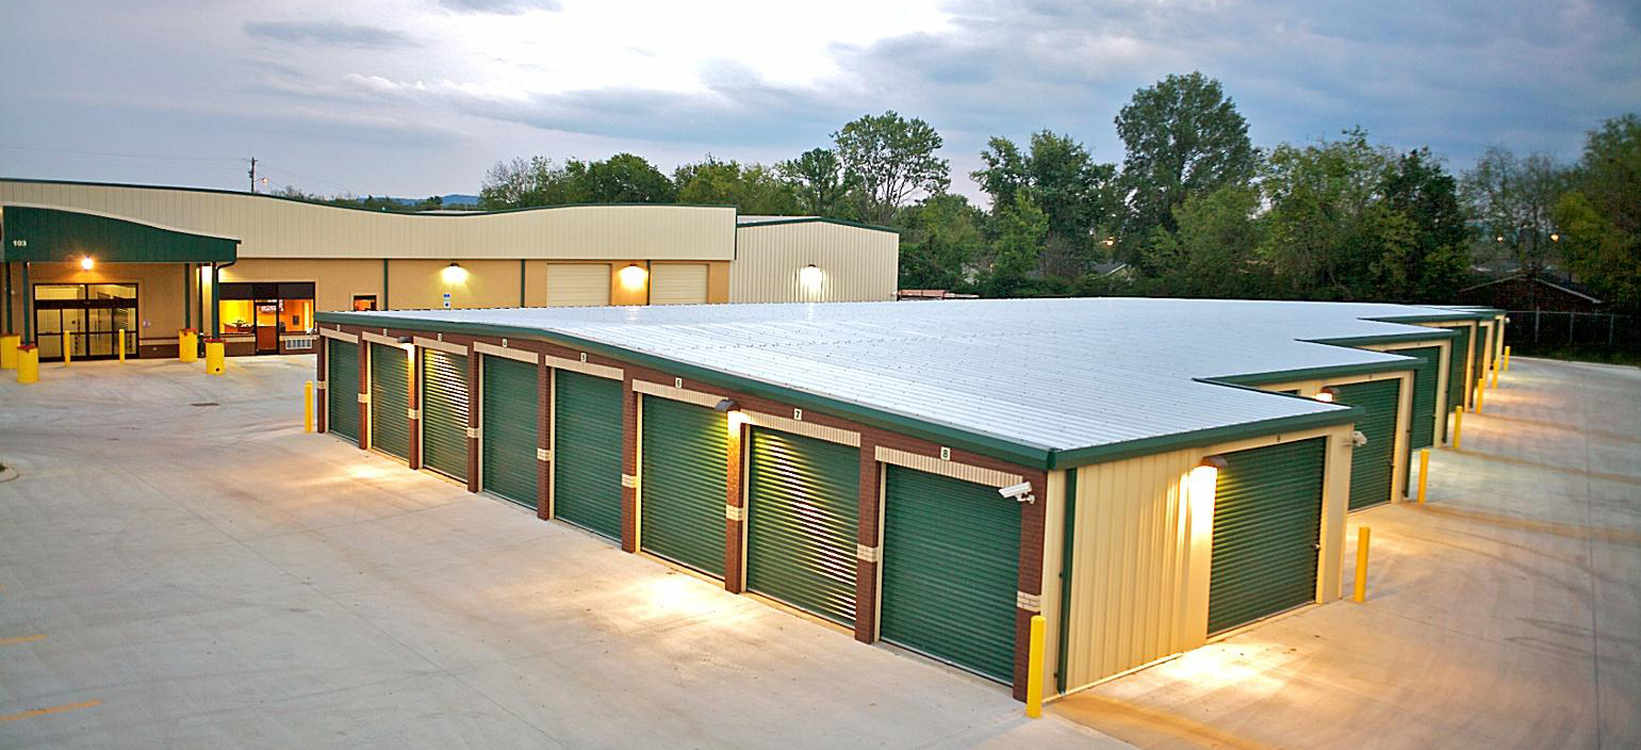 Bon Self Storage Space In Lebanon, TN 37087 With All Things Storage